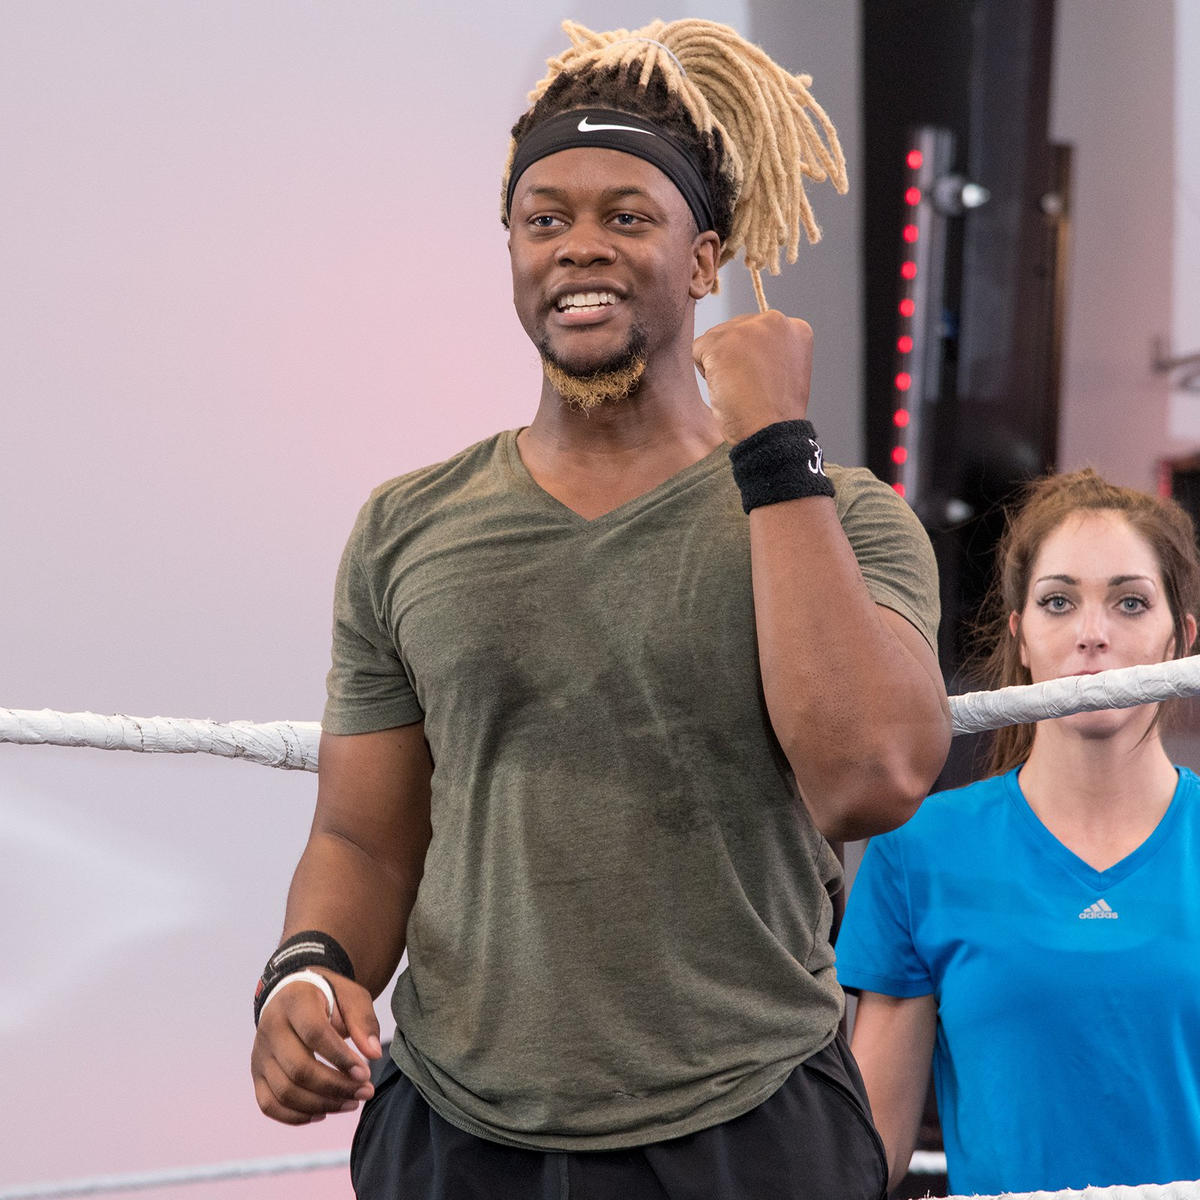 New England independent wrestler Darley Desamot is ready to conquer the in-ring drills.